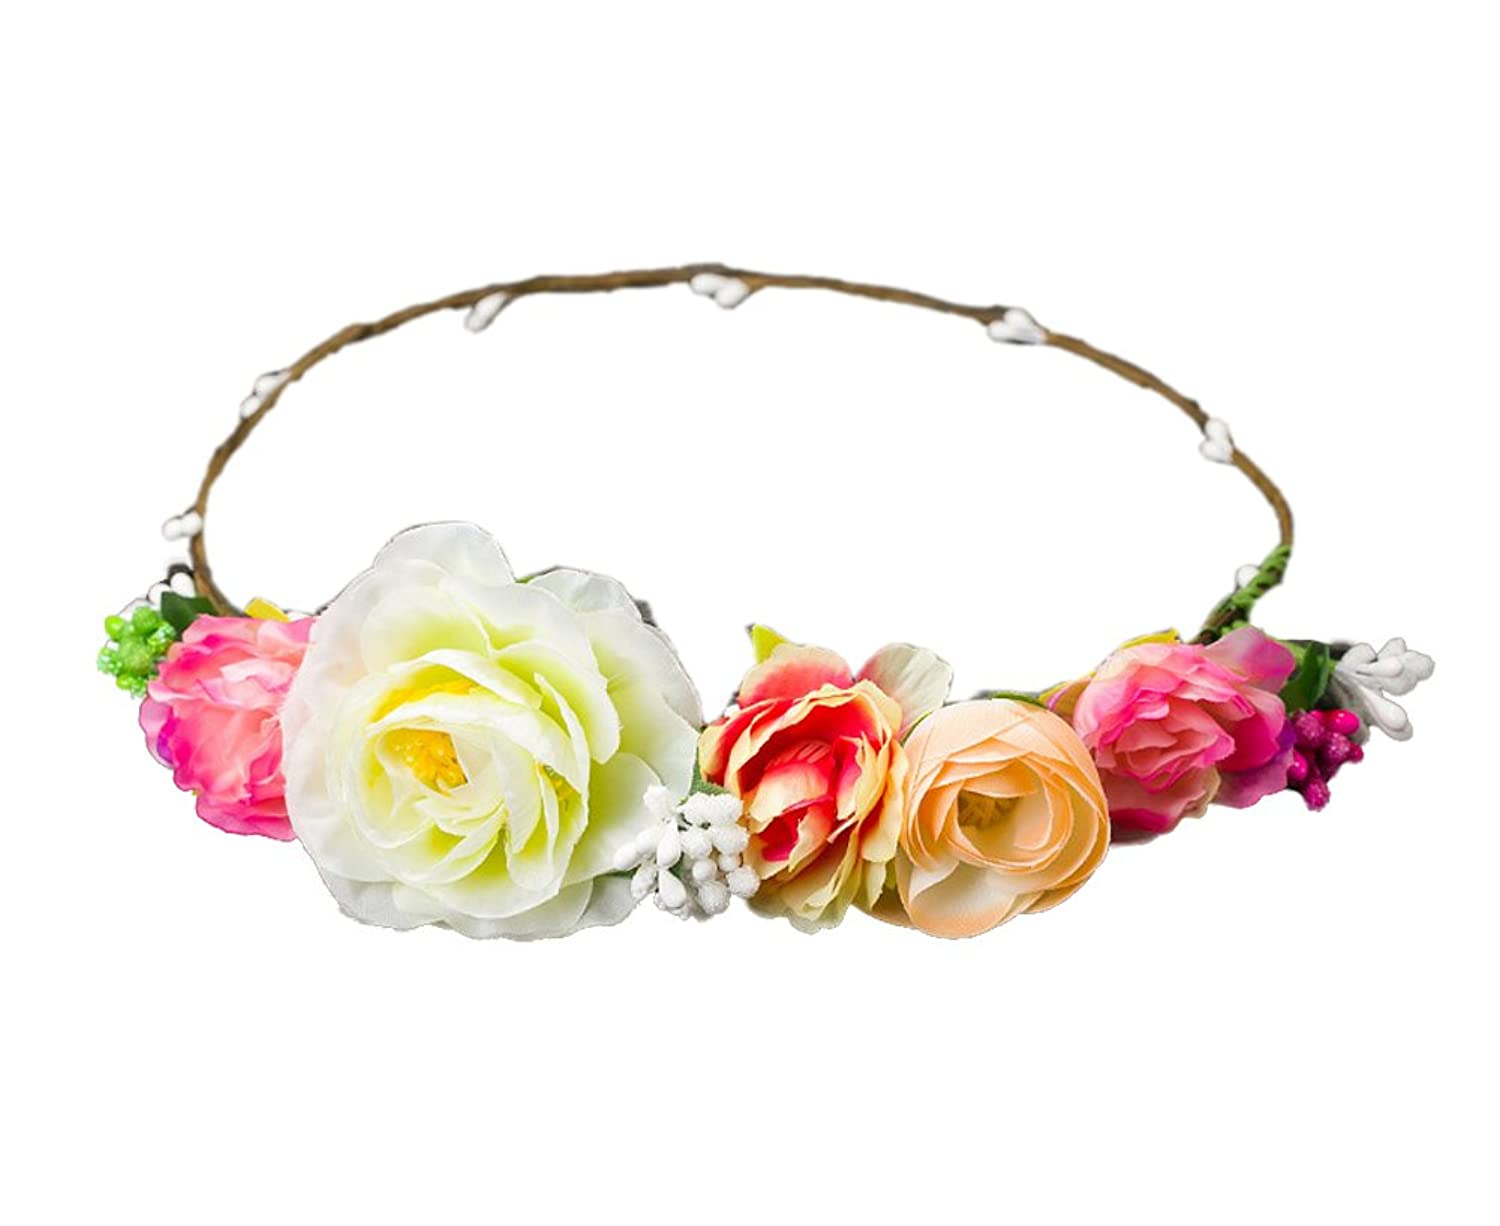 Merroyal Flower Head Crown Wreath Headband Fascinator Wedding Garland Festival Beach